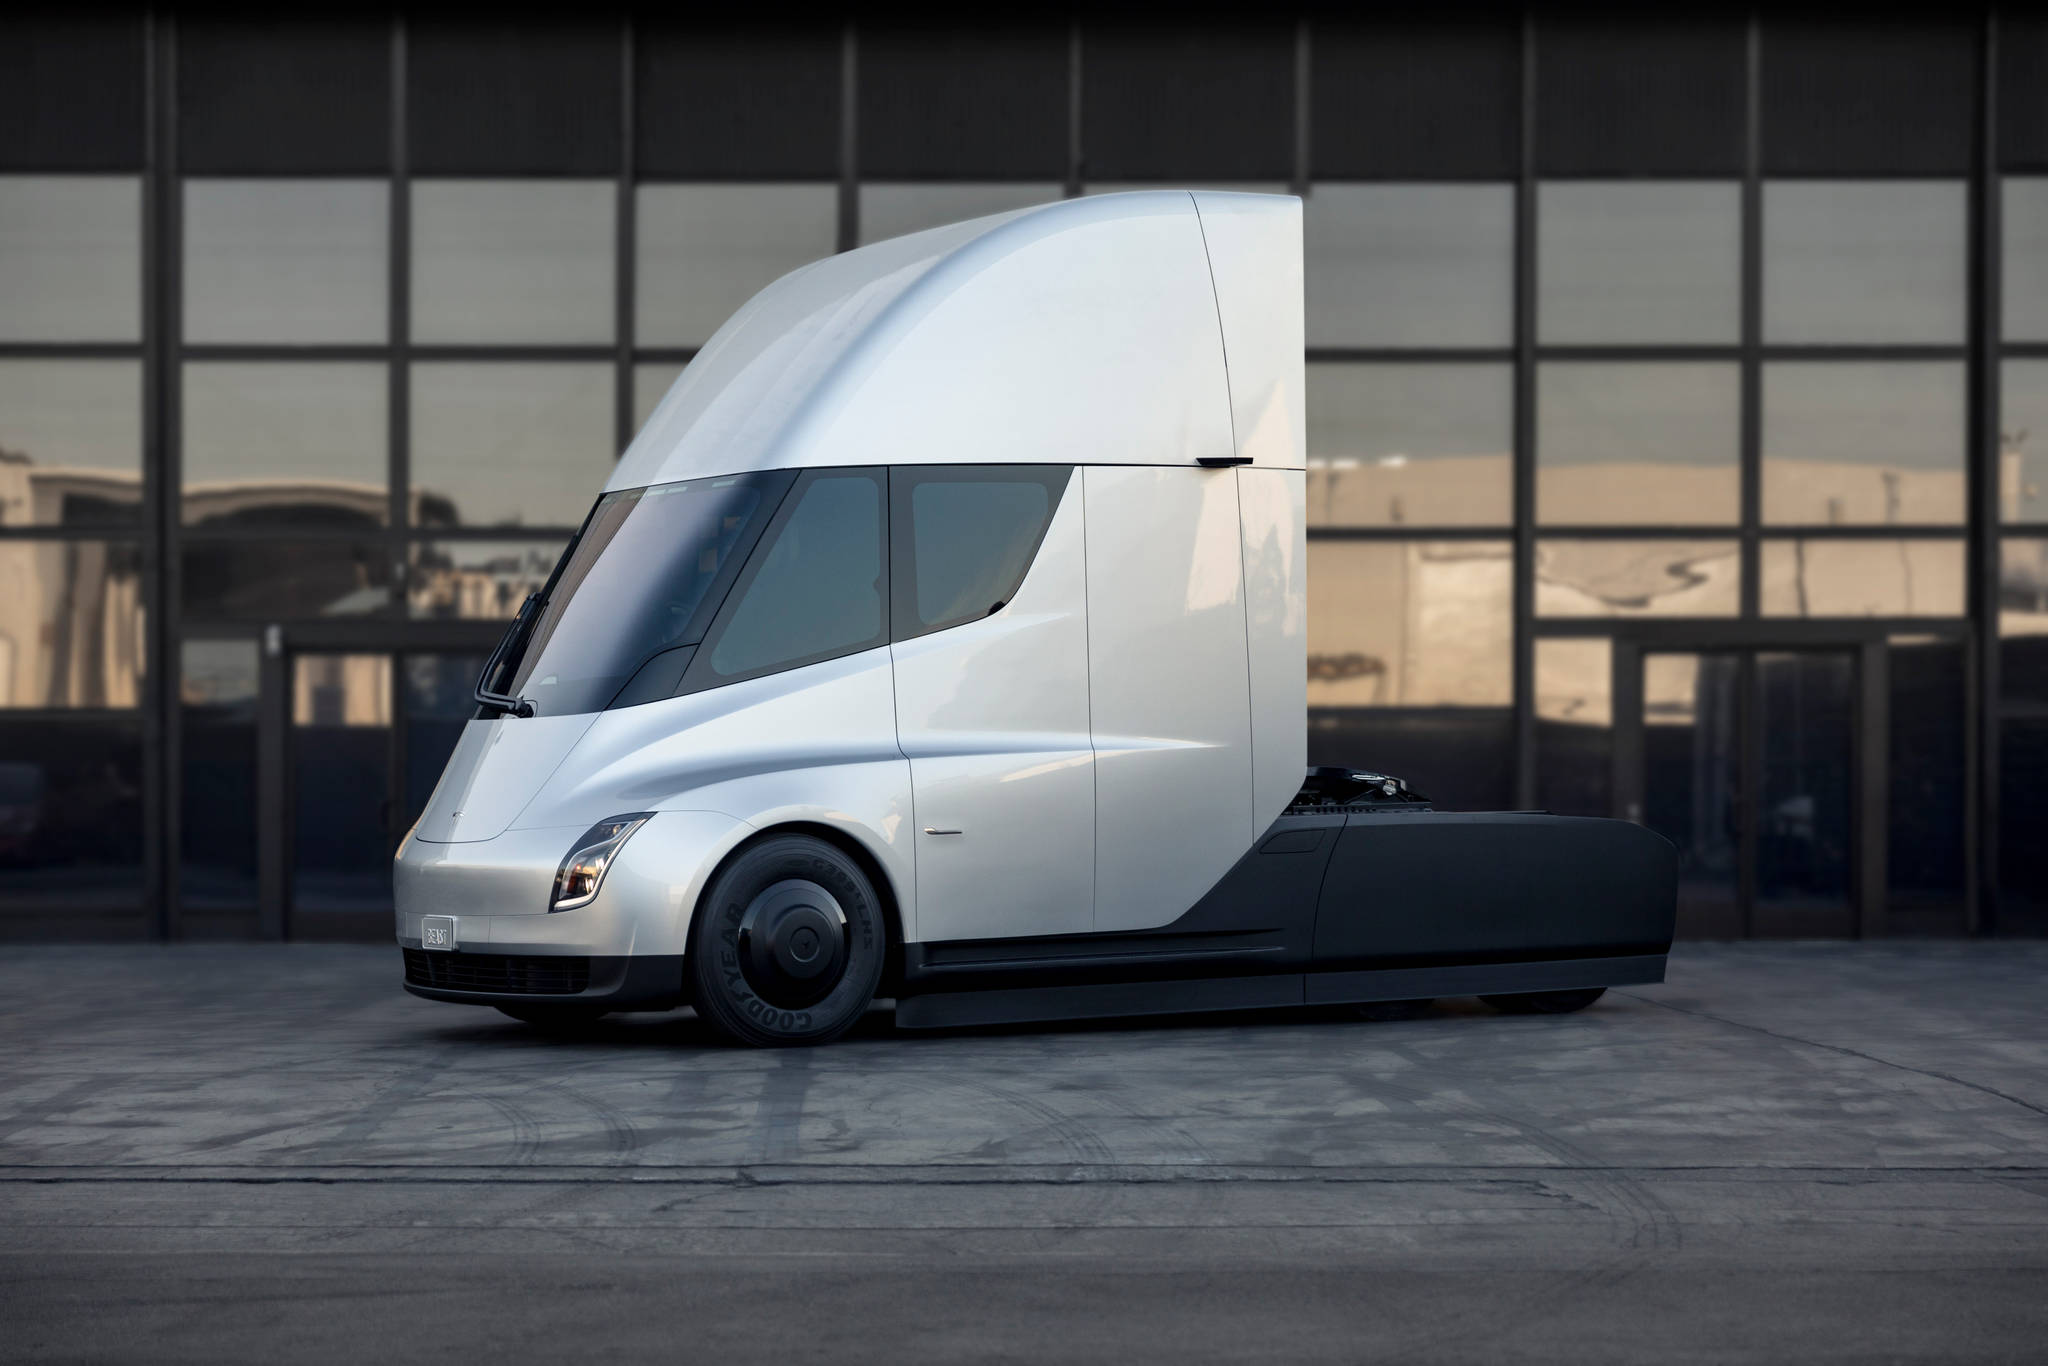 Mosaic Forest Management will be testing out Tesla semis as part of a pilot project. Photo courtesy of Tesla Inc.